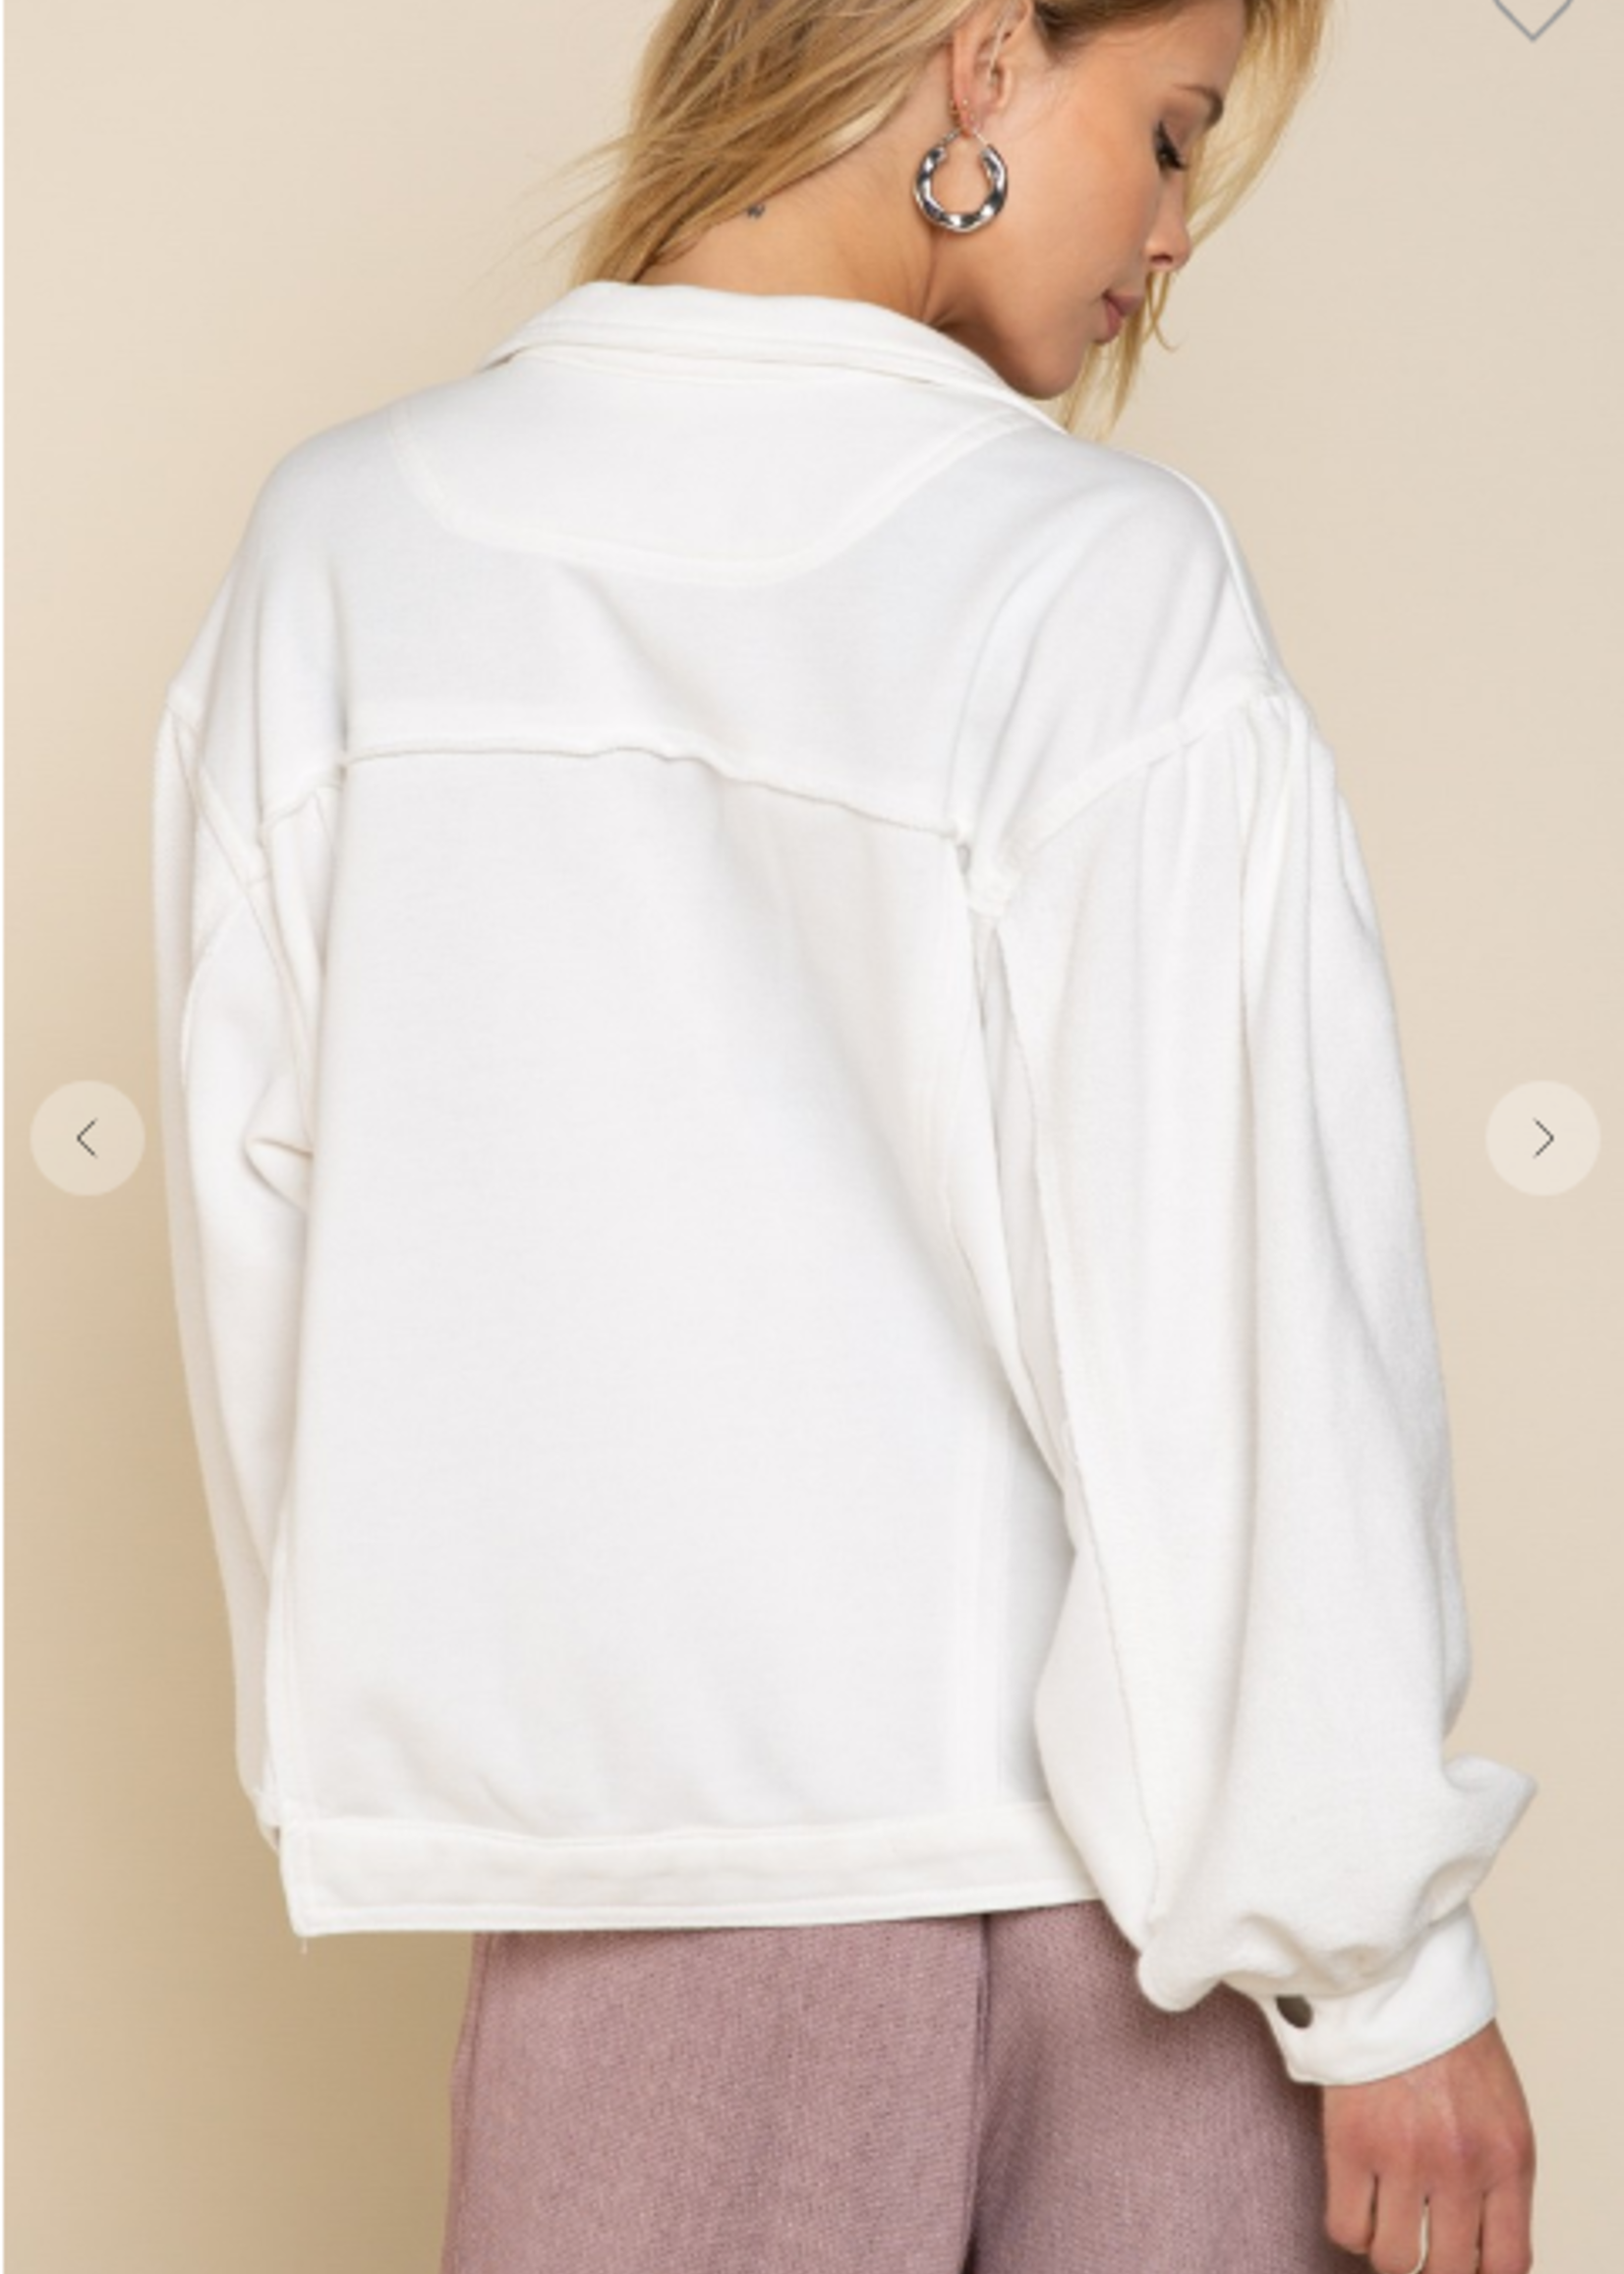 French Terry Jacket - Ivory